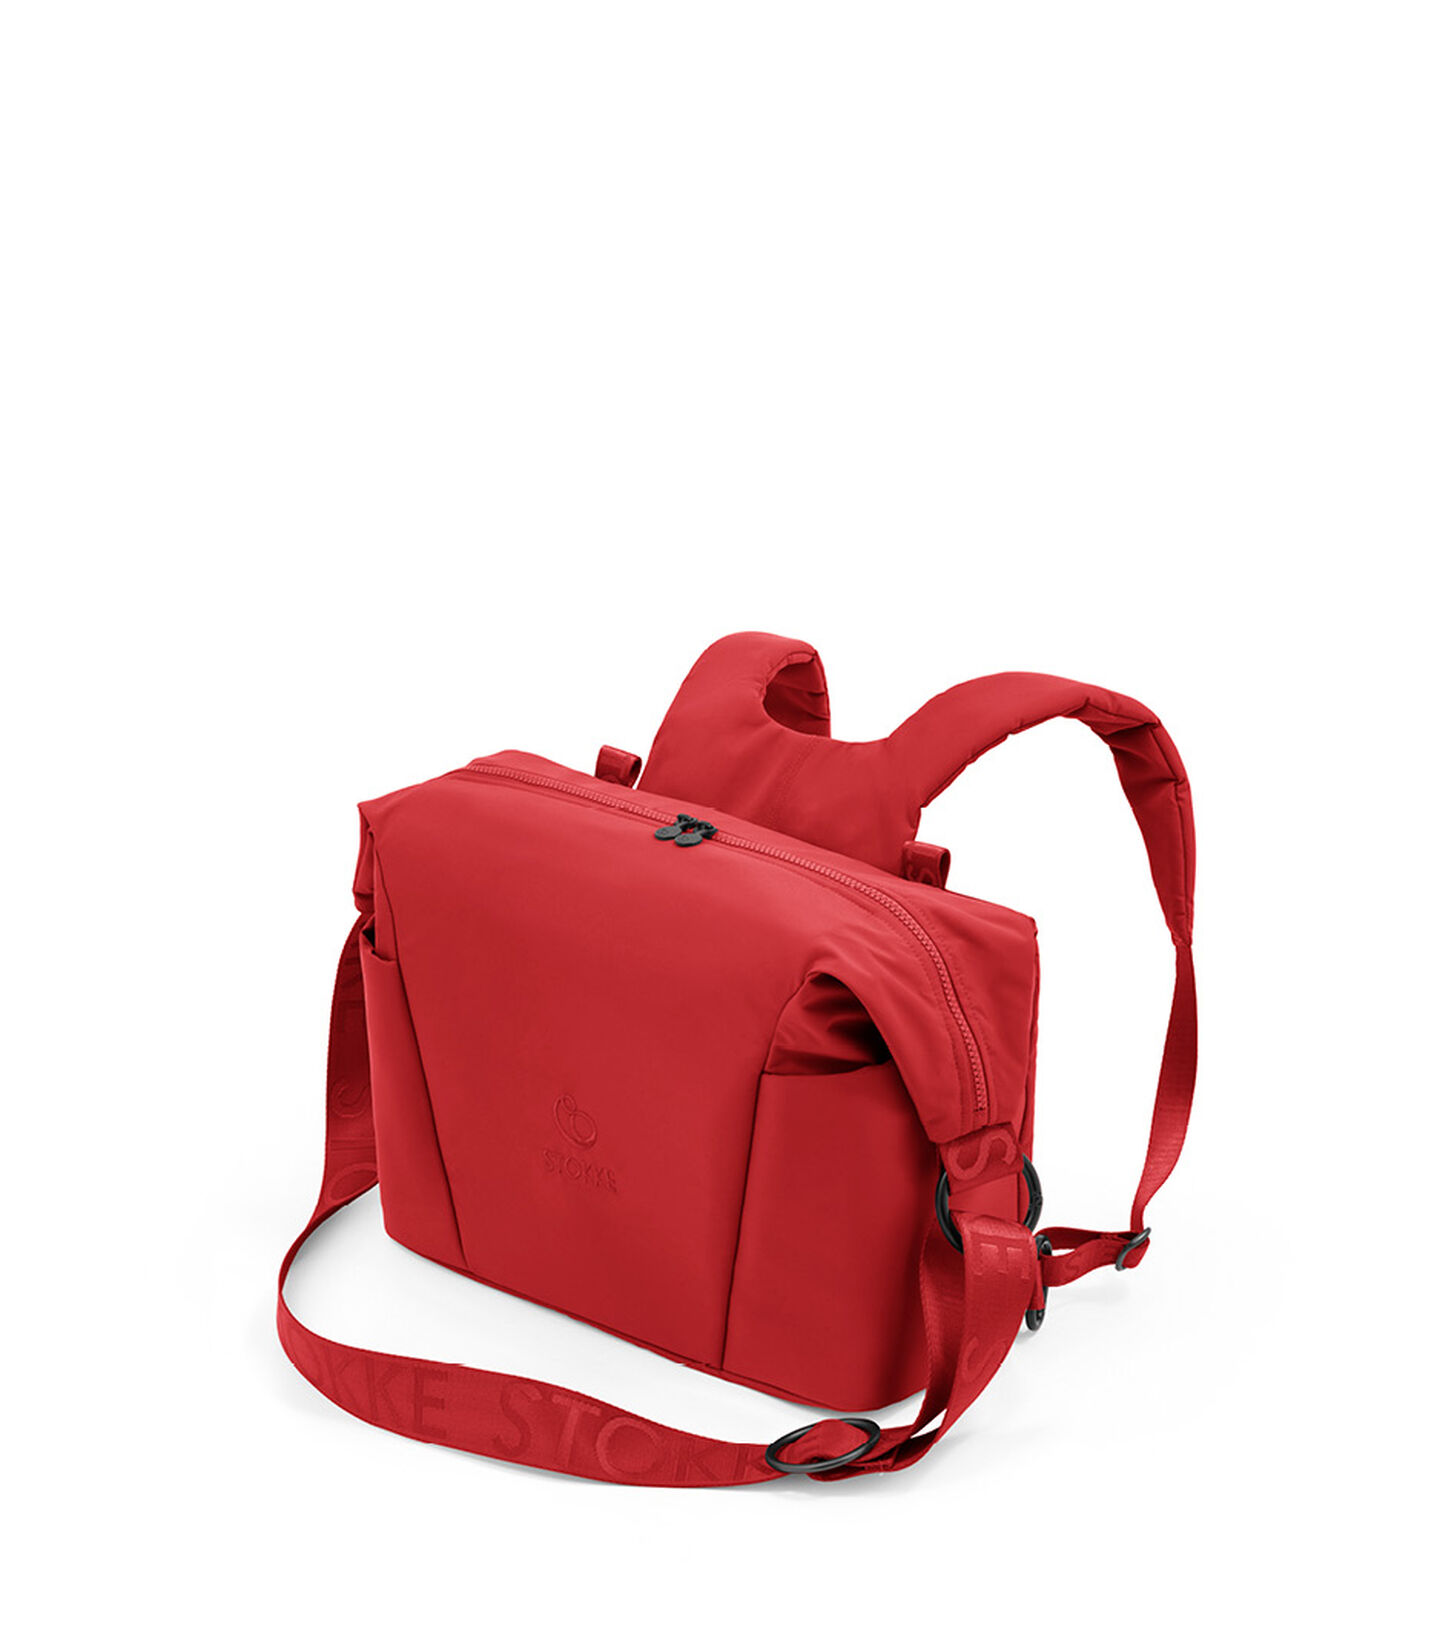 Stokke® Xplory® X Changing bag Ruby Red, Rosso Rubino, mainview view 2